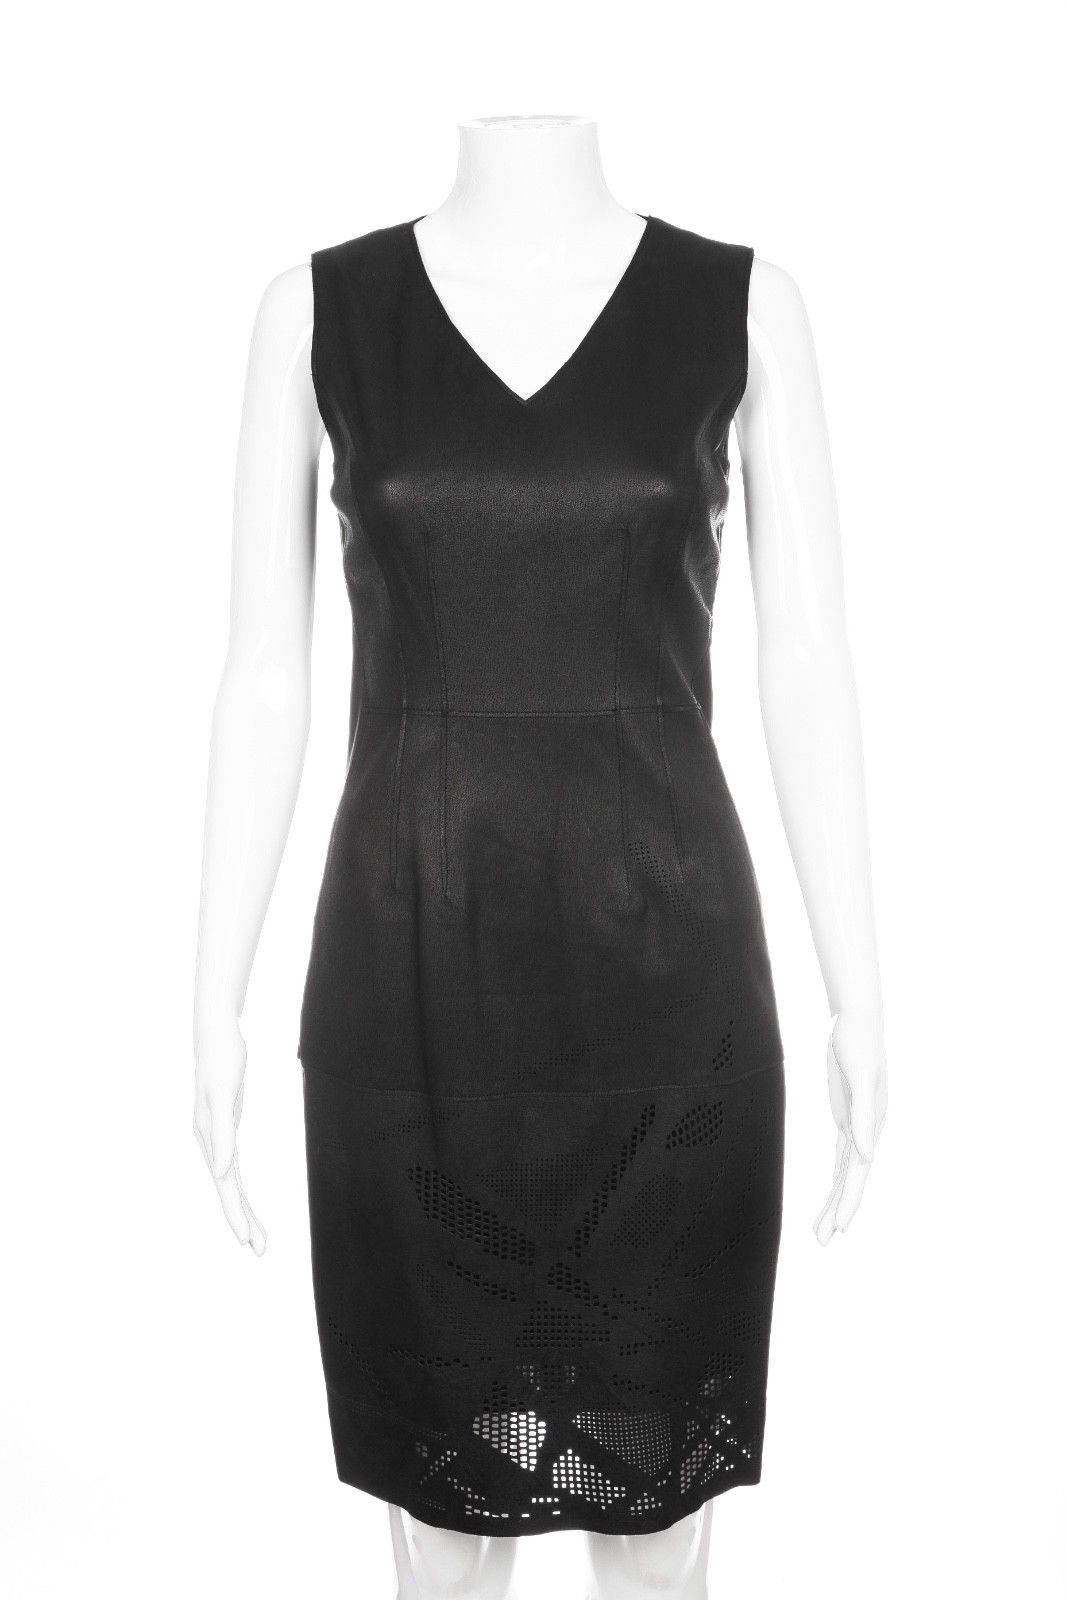 ELIE TAHARI Black Andrea Leather Laser Cut Out Dress Size 0 (New)